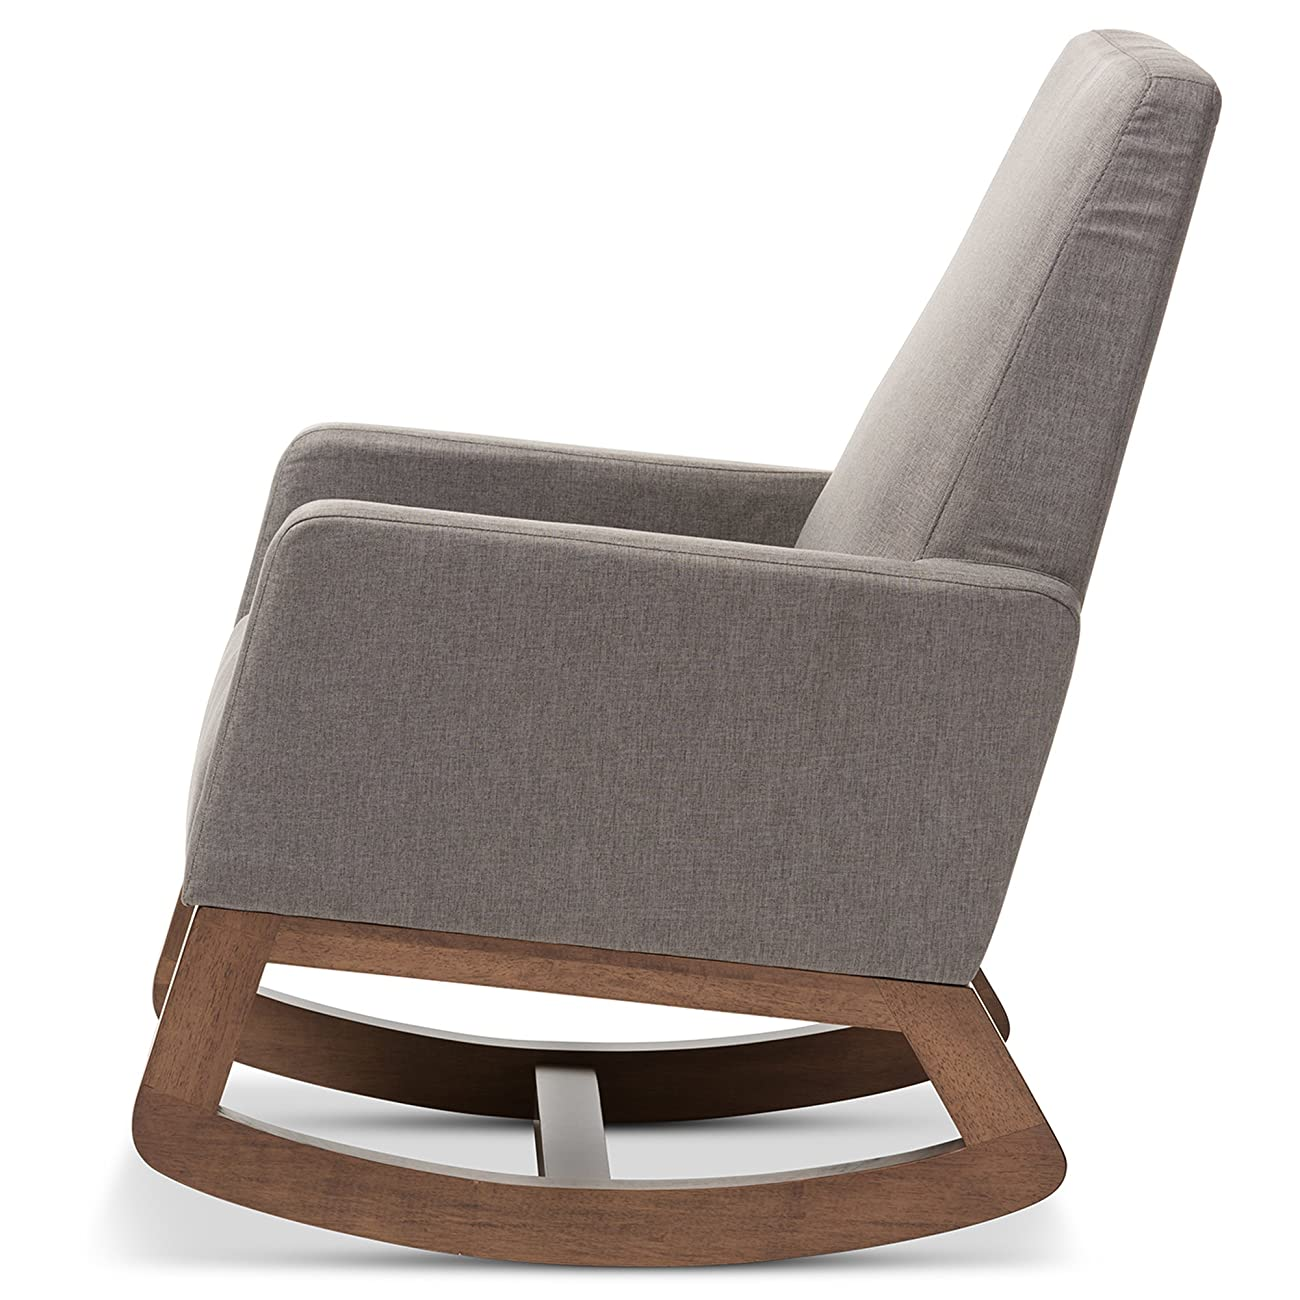 Baxton Studio Yashiya Mid Century Retro Modern Fabric Upholstered Rocking Chair, Grey 2